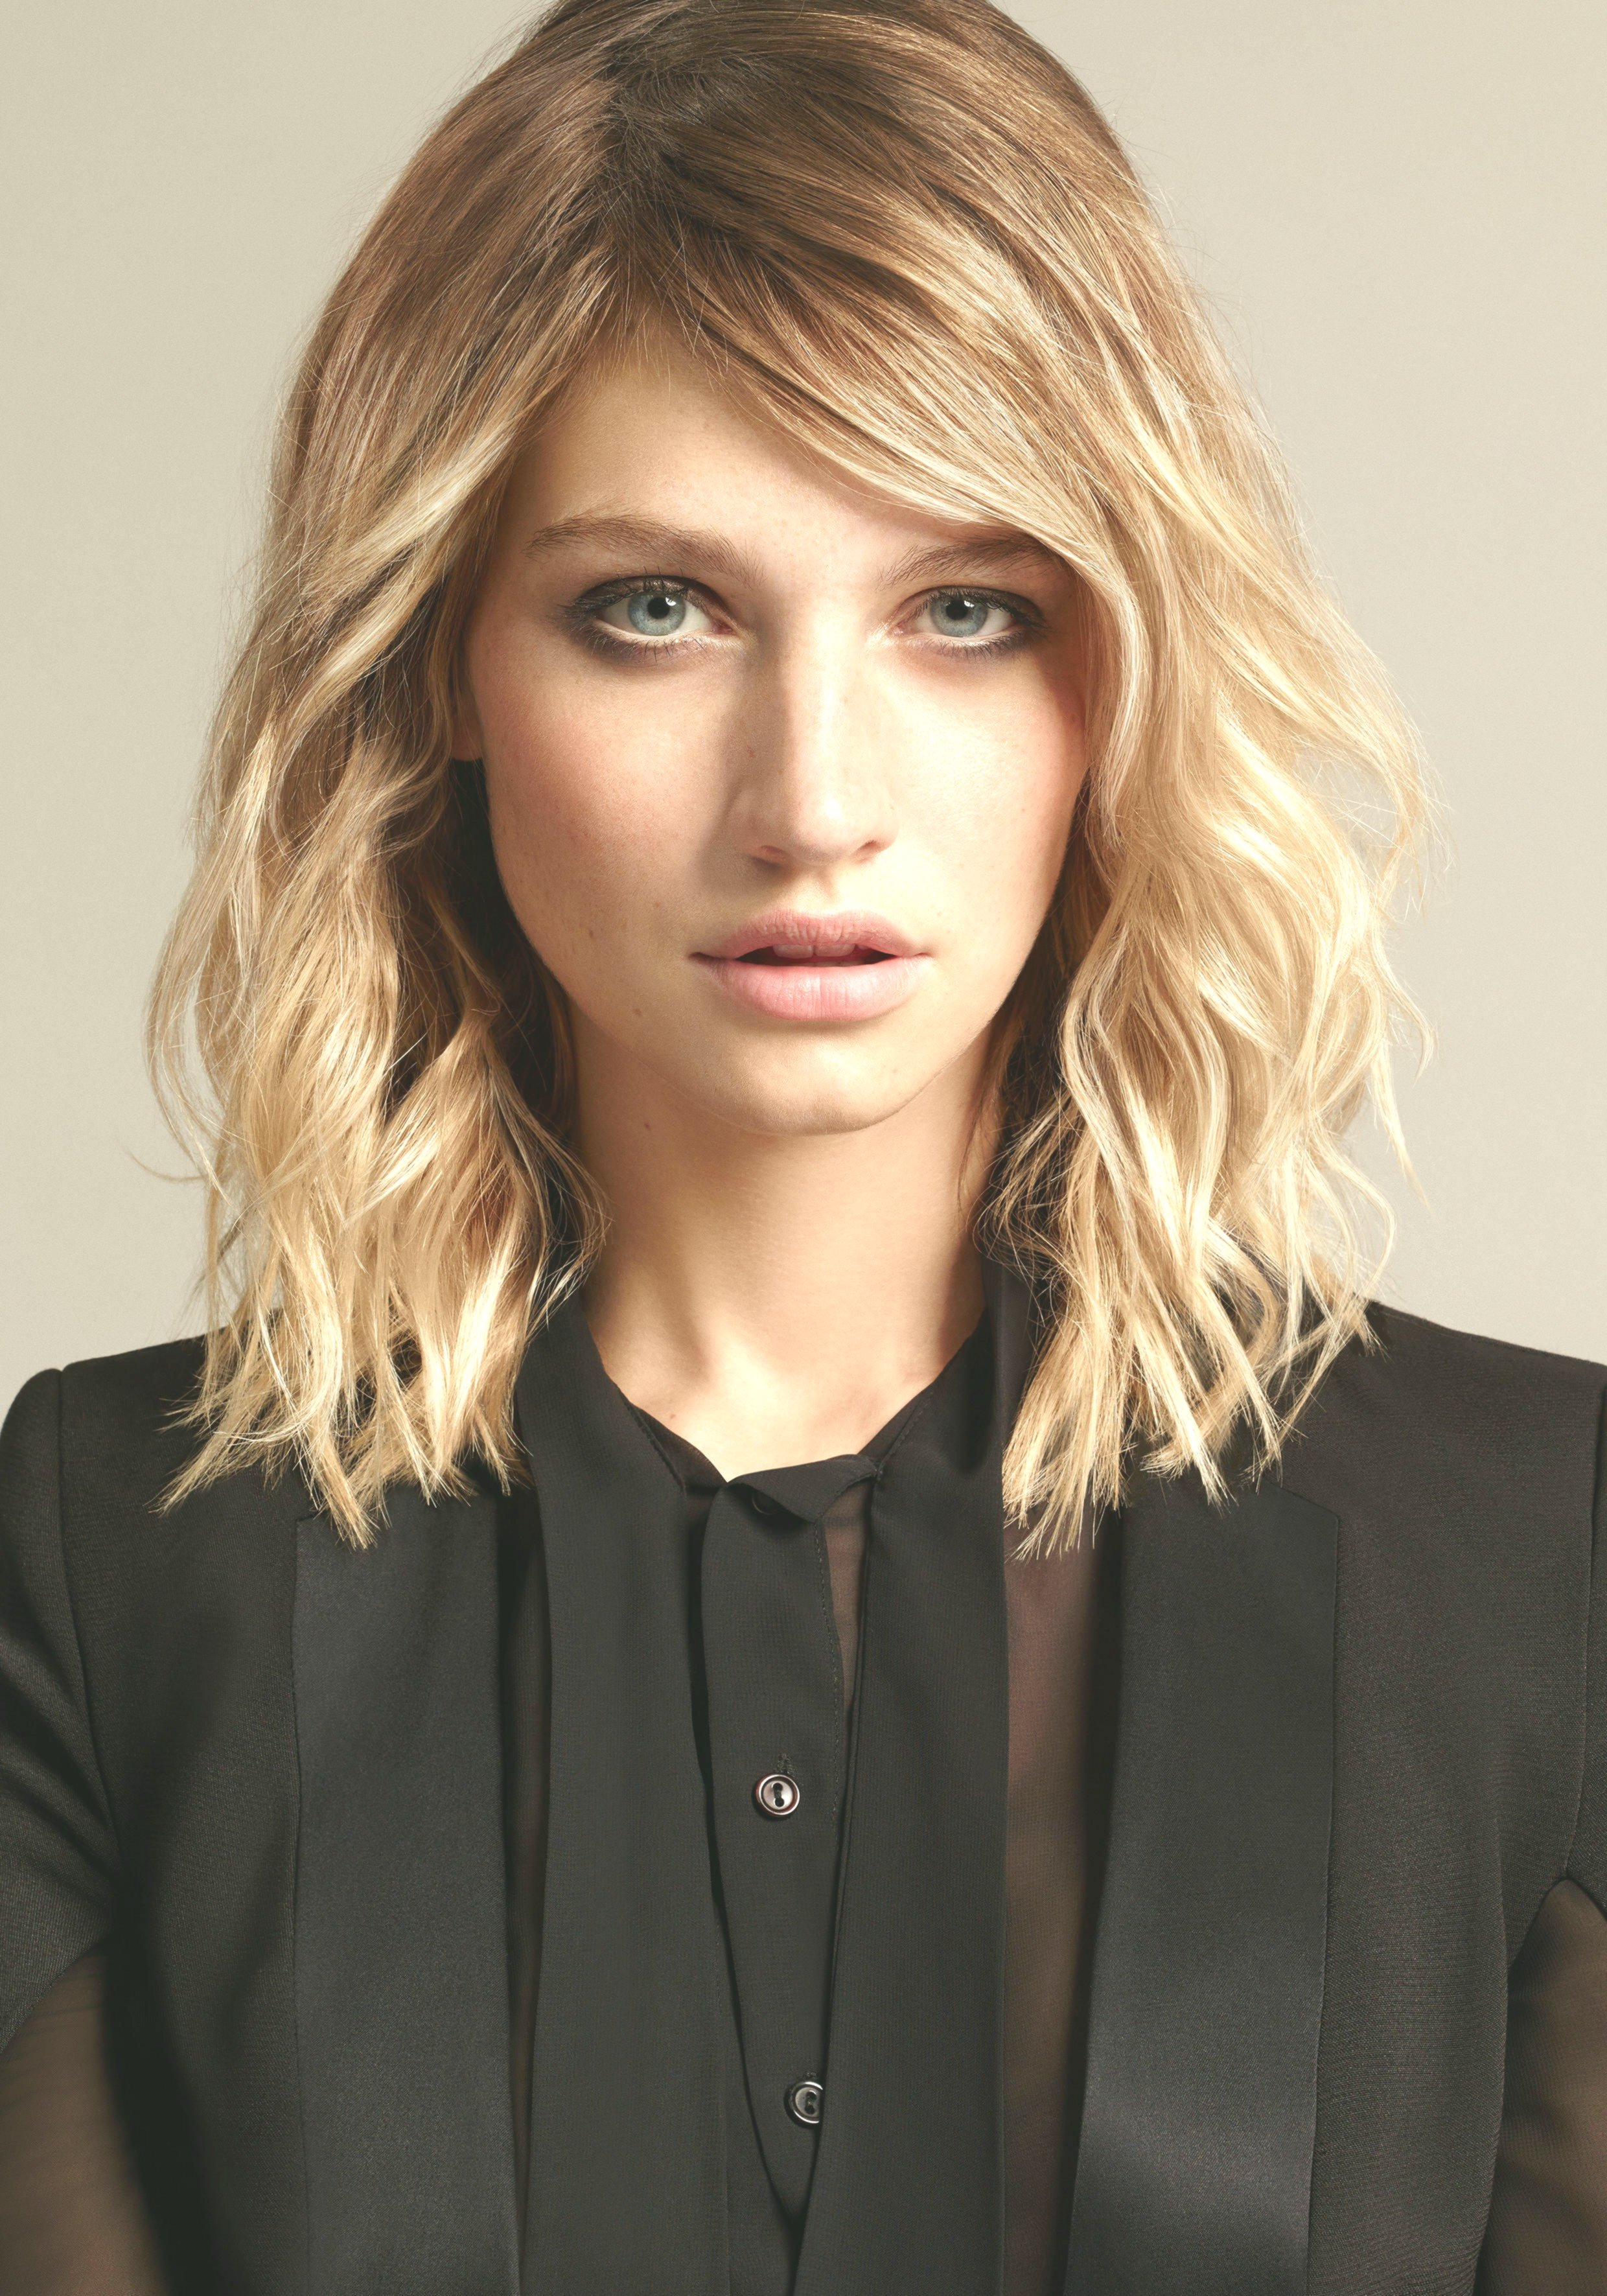 Stylish Hairstyles Brown Design Inspirational Hairstyles Brown Reviews